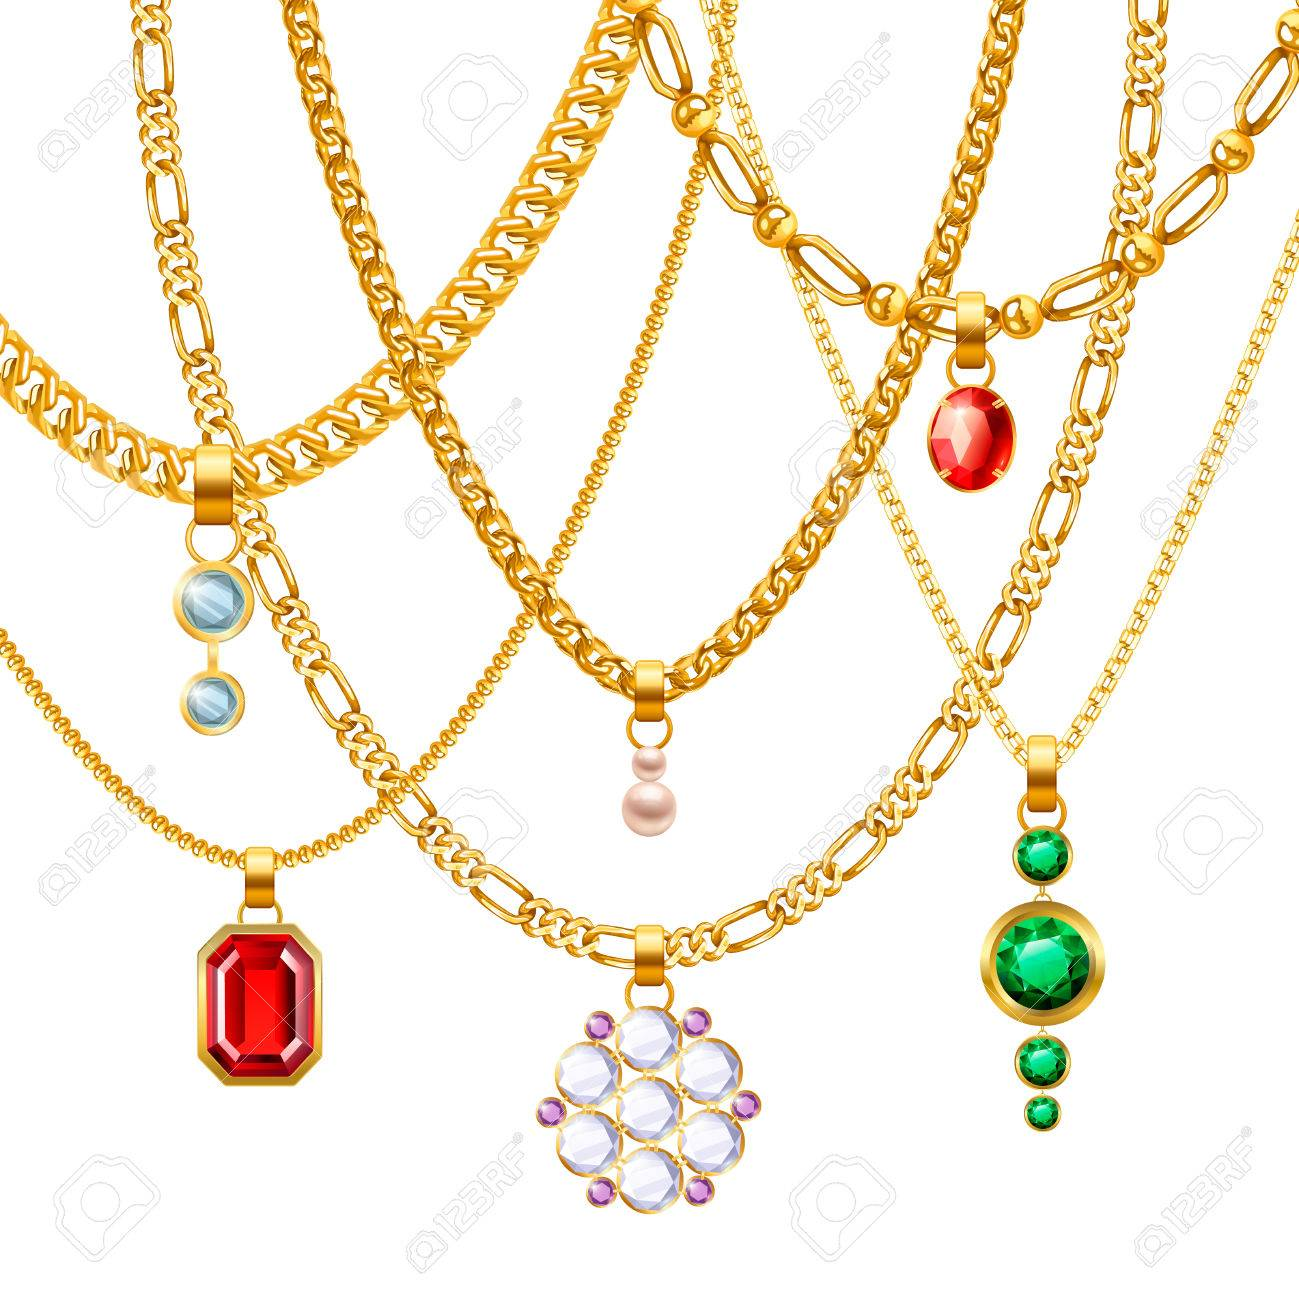 Golden Jewelry Chains Set With Different Pendants Realistic Vector ...